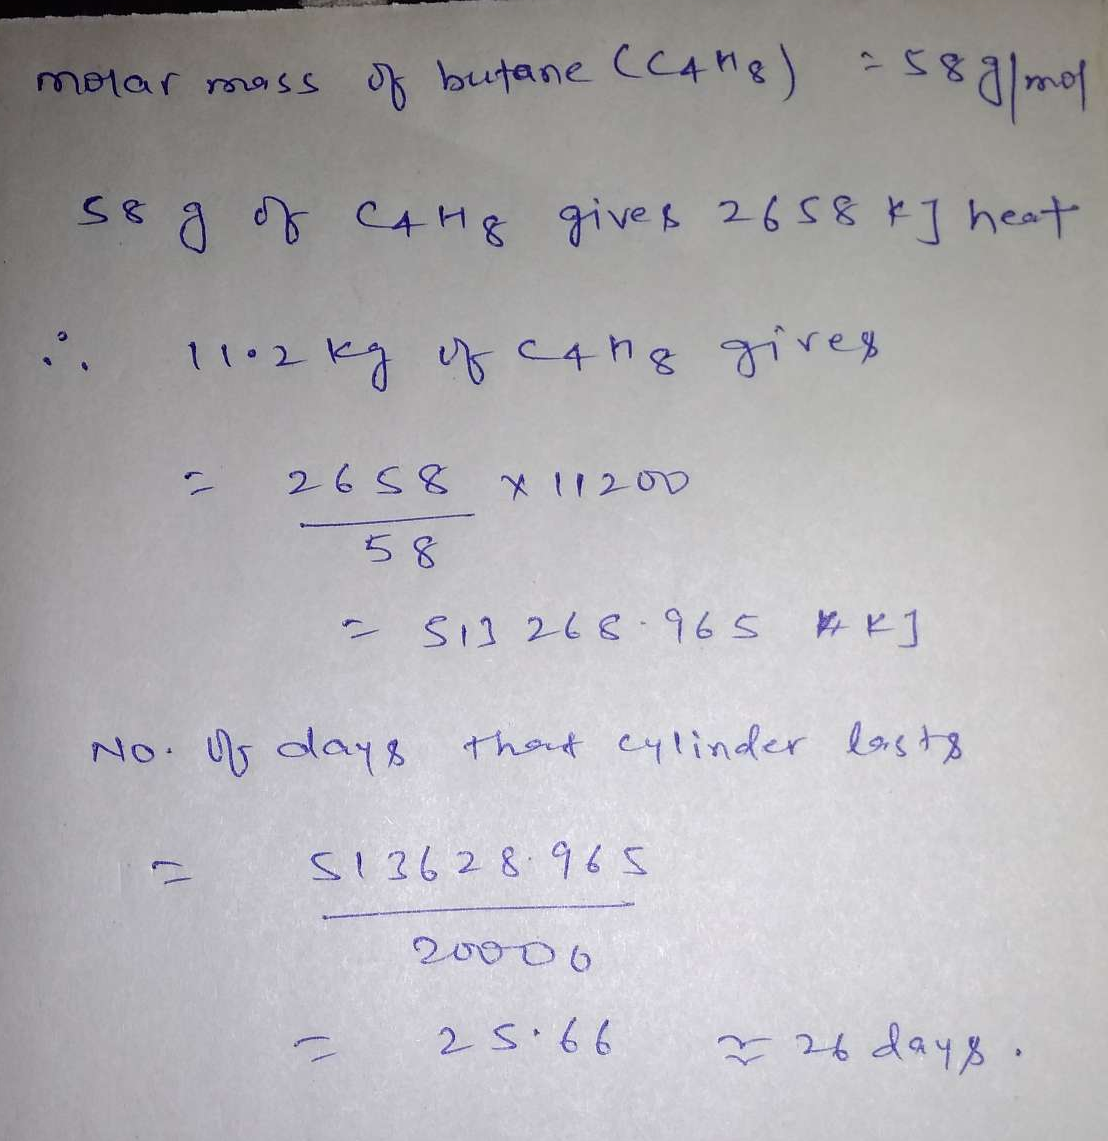 A cylinder of gas is assumed to contains 11.2 kg of butane. If a normal family needs 20,000 kJ of energy per day for cooking, how long will the cylinder last if the enthalpy of combustion